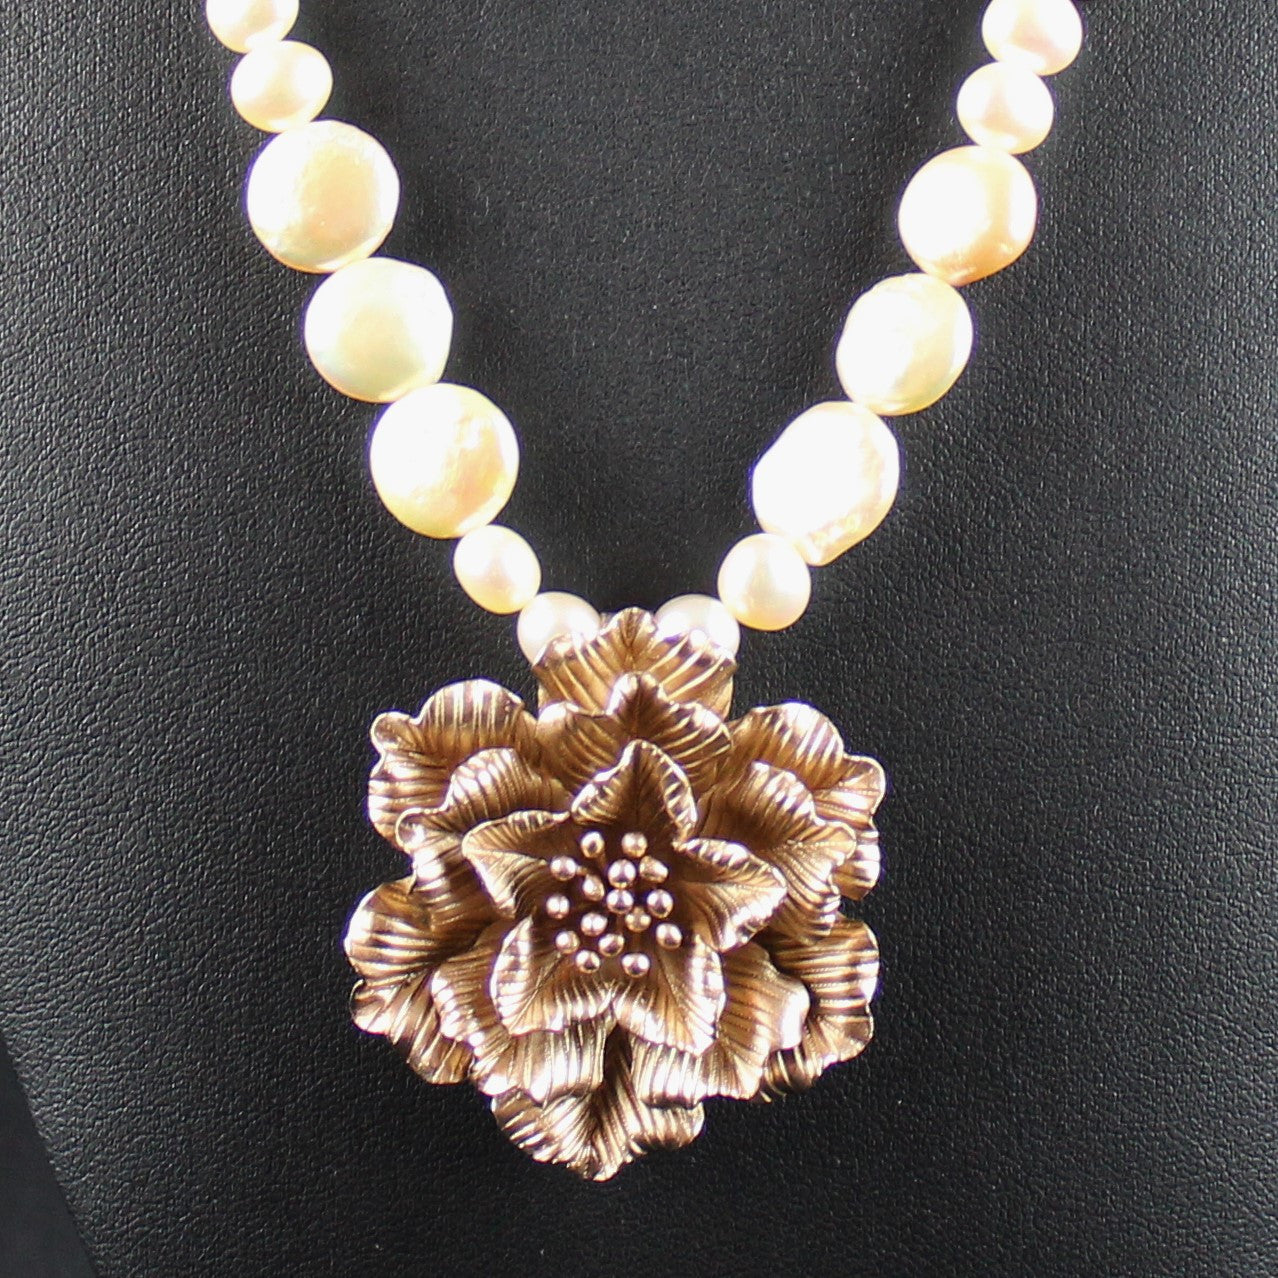 Susan M - Apricot Pearl Necklace